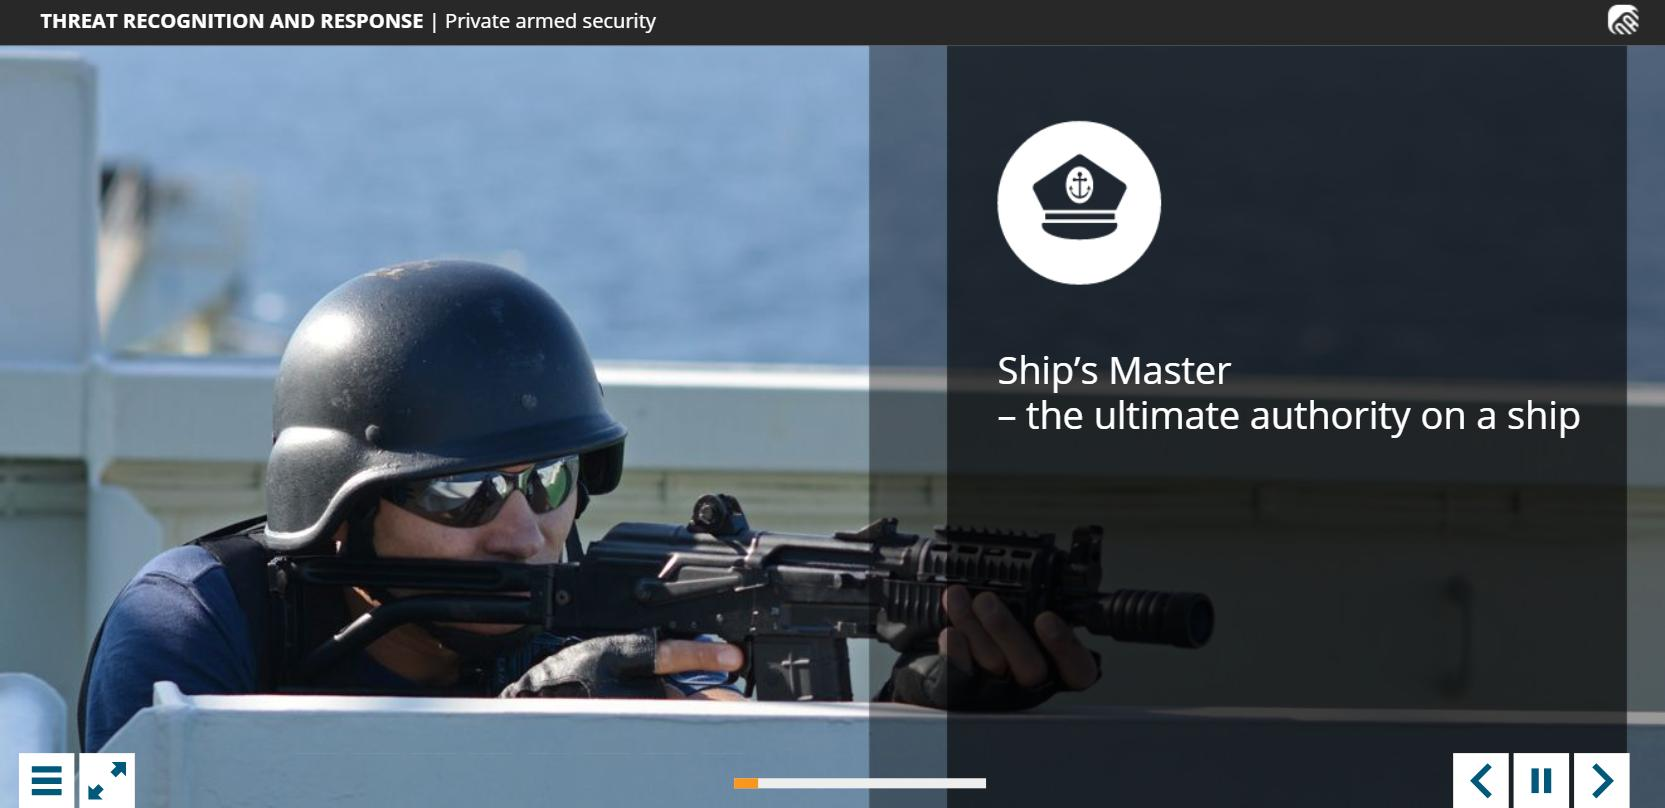 Piracy and Armed Robbery Training 5